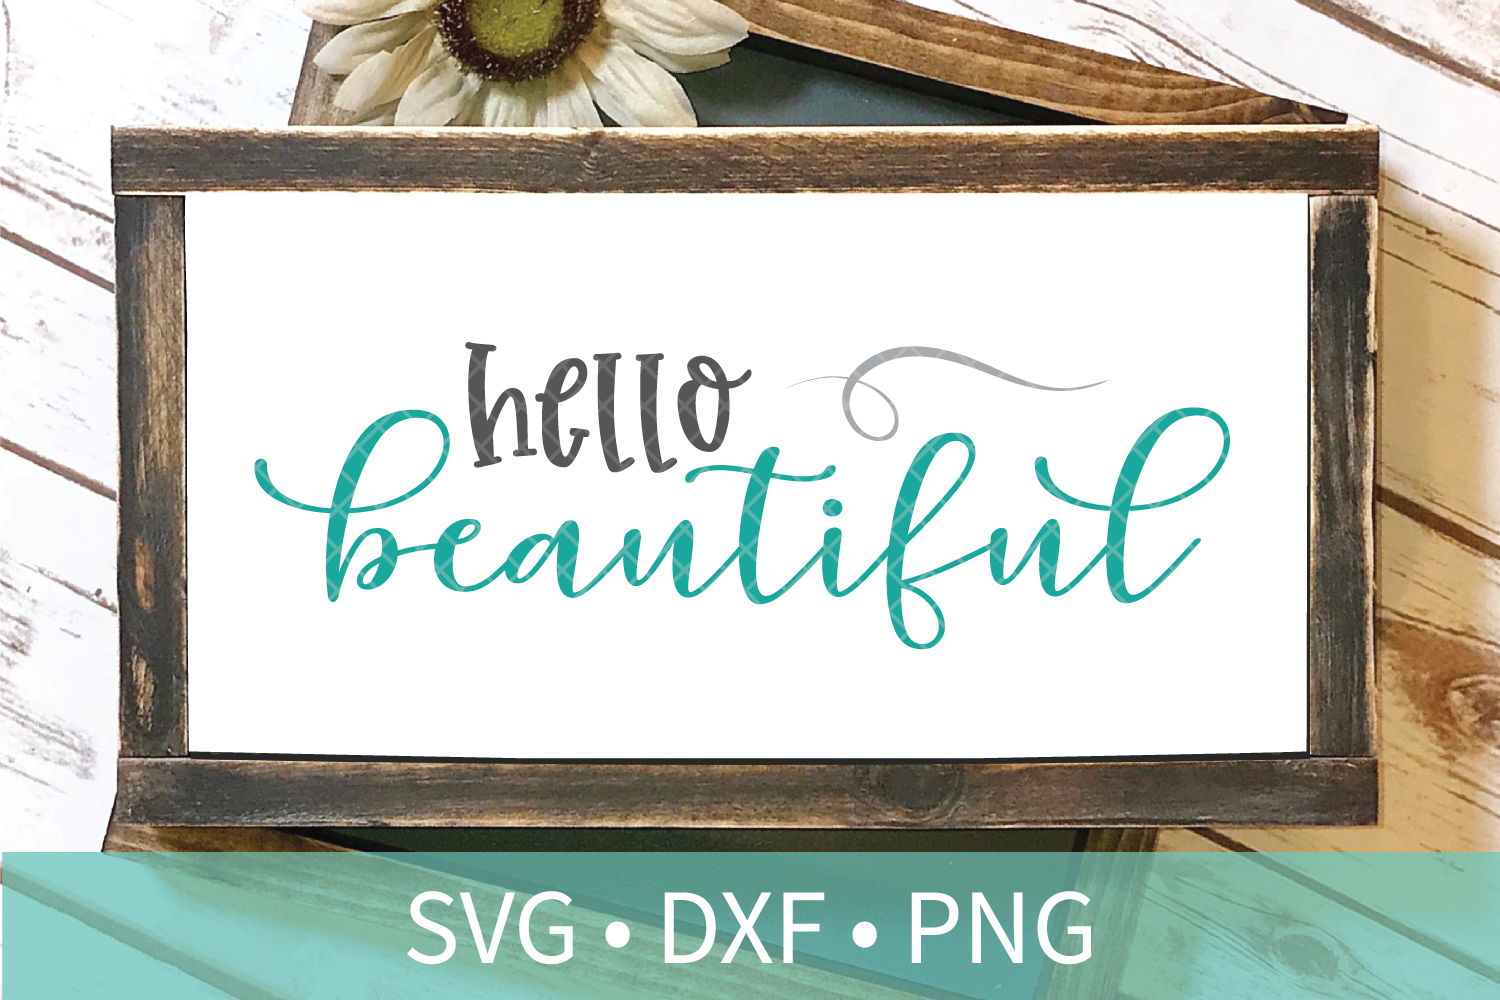 Hello Beautiful Sign SVG - SVG DXF PNG example image 1